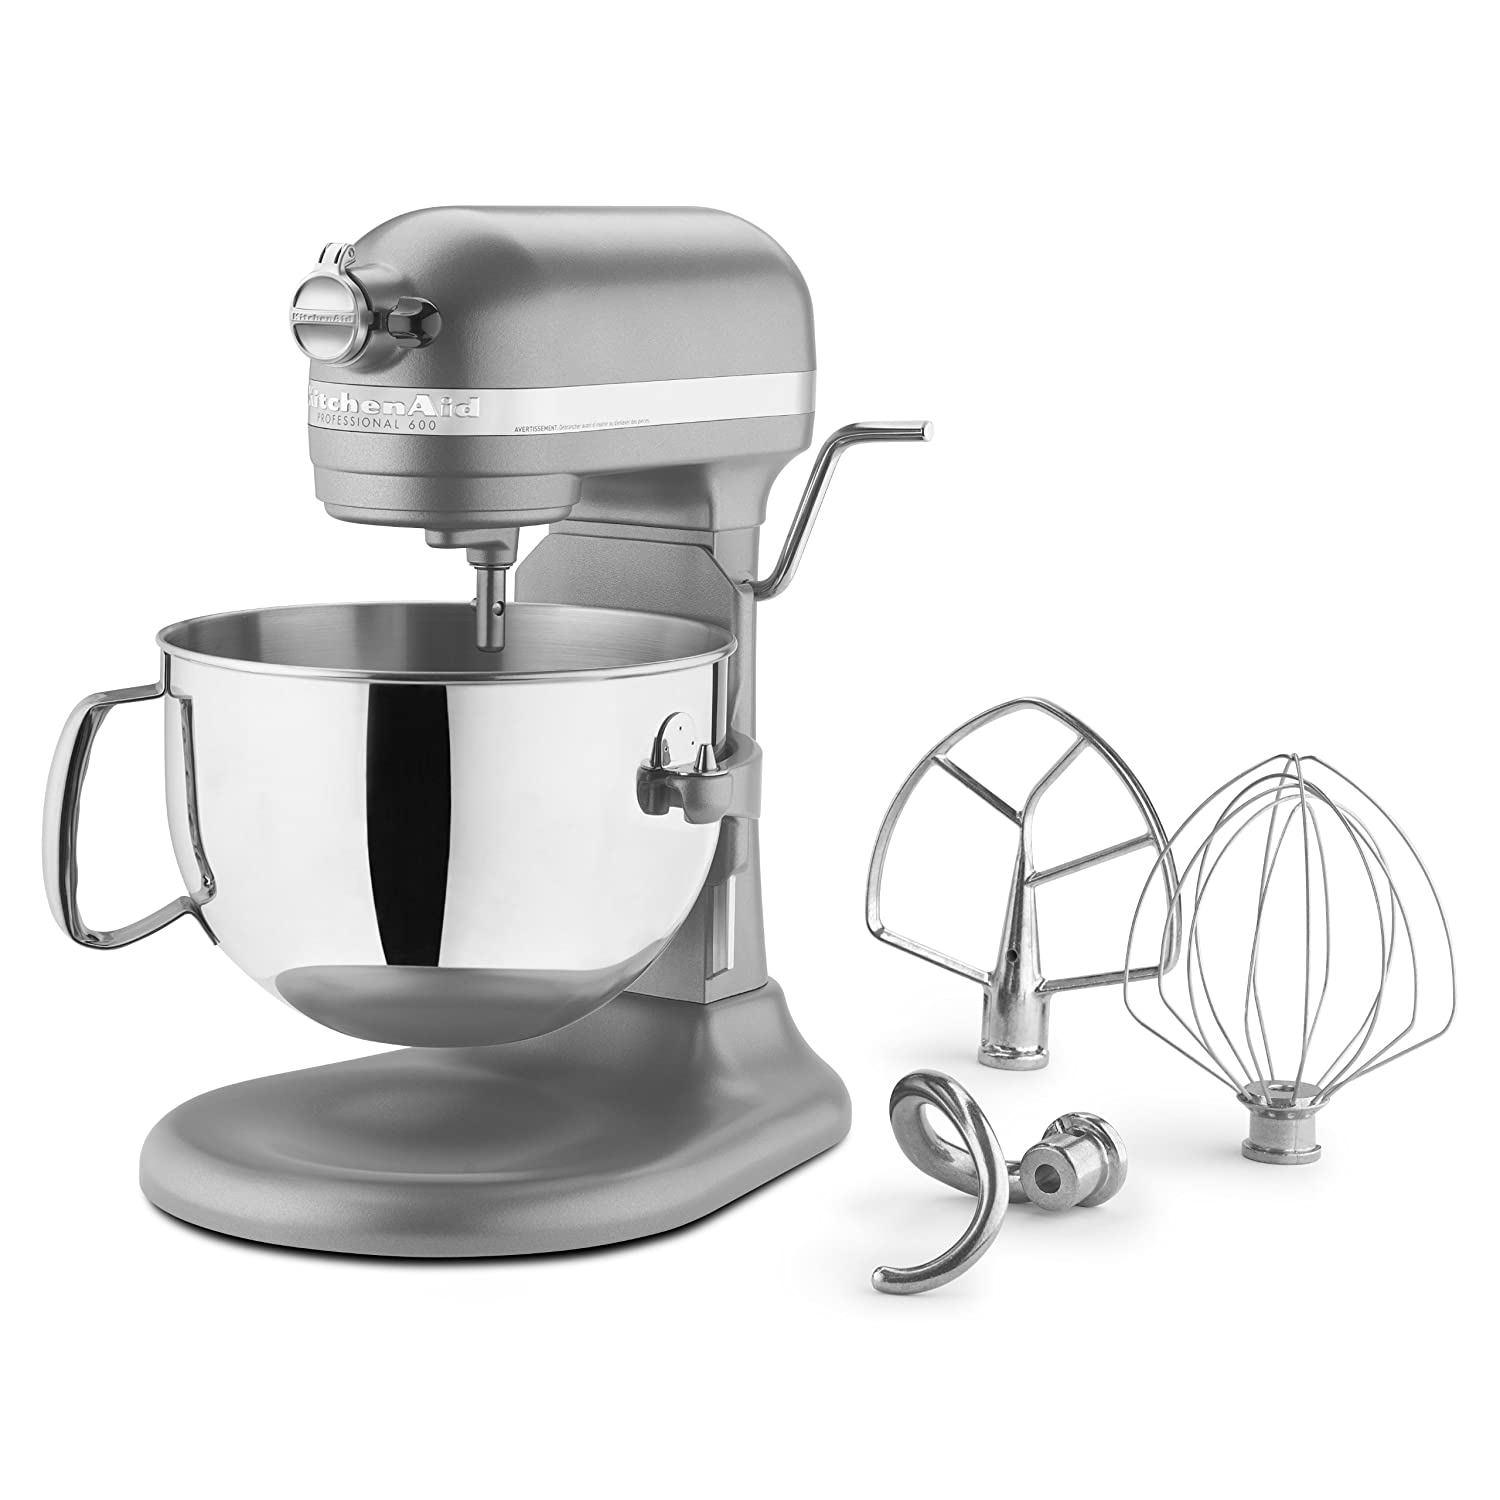 kitchen aid professional 600 small white cabinets mixer - angebote auf waterige